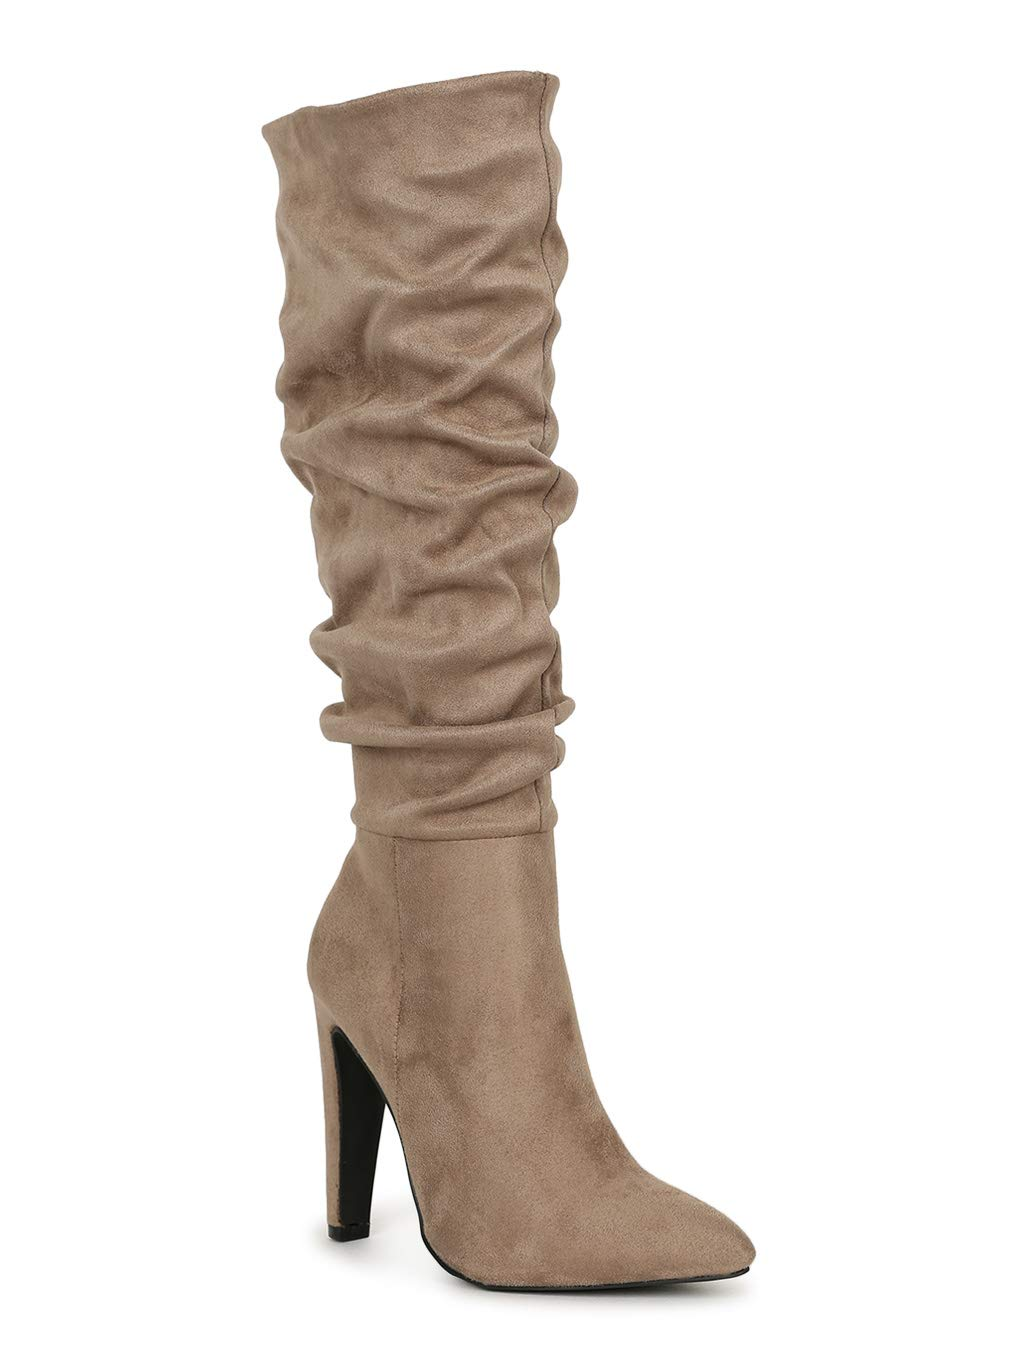 Alrisco Women's Faux Suede Pointy Toe Slouchy Chunky Knee High Boots SG27